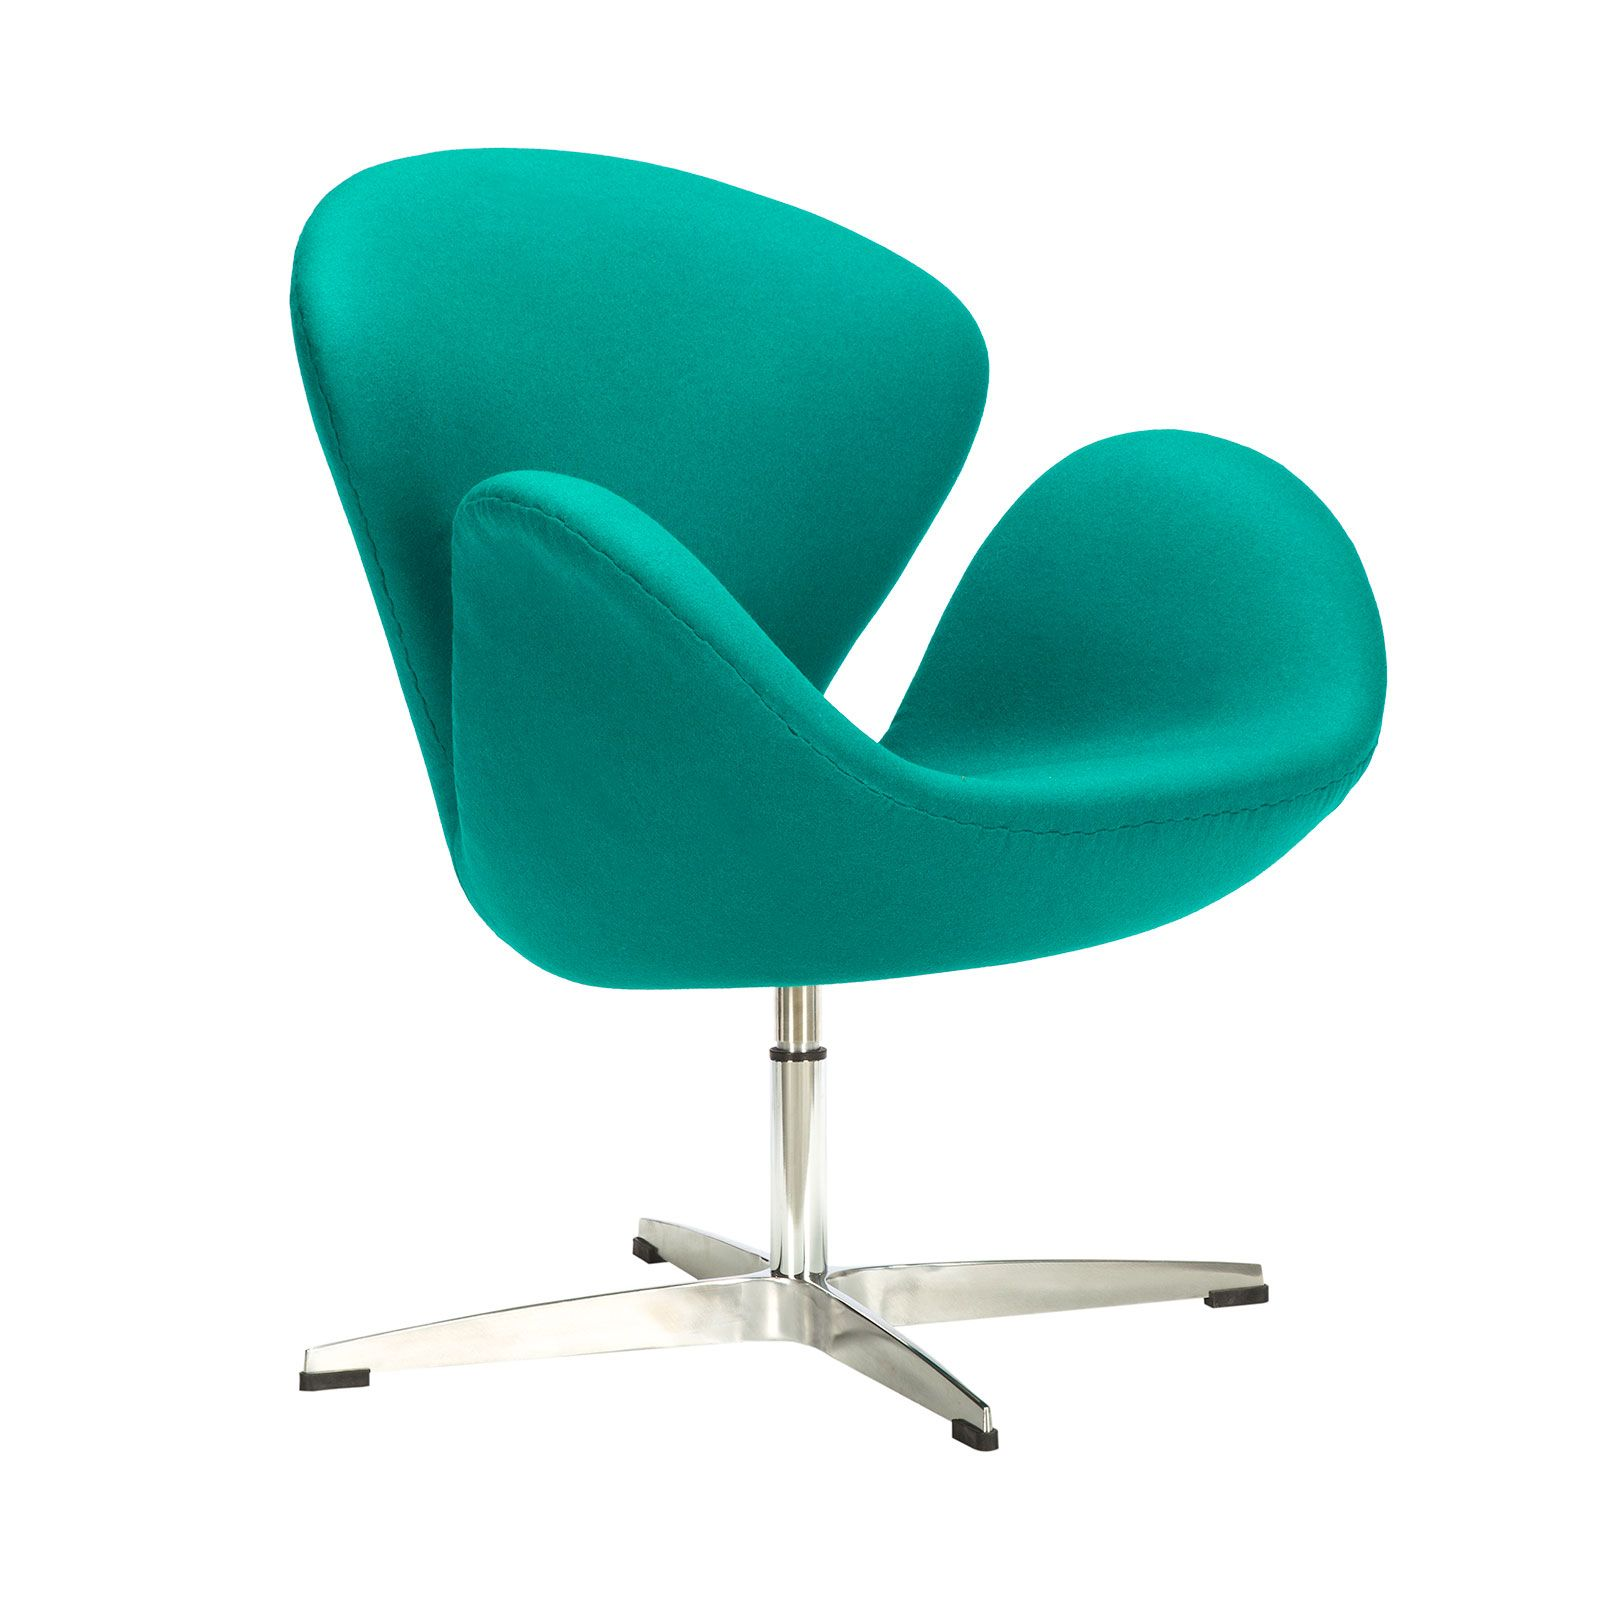 Inspired by mid-century modern furniture design principles ...